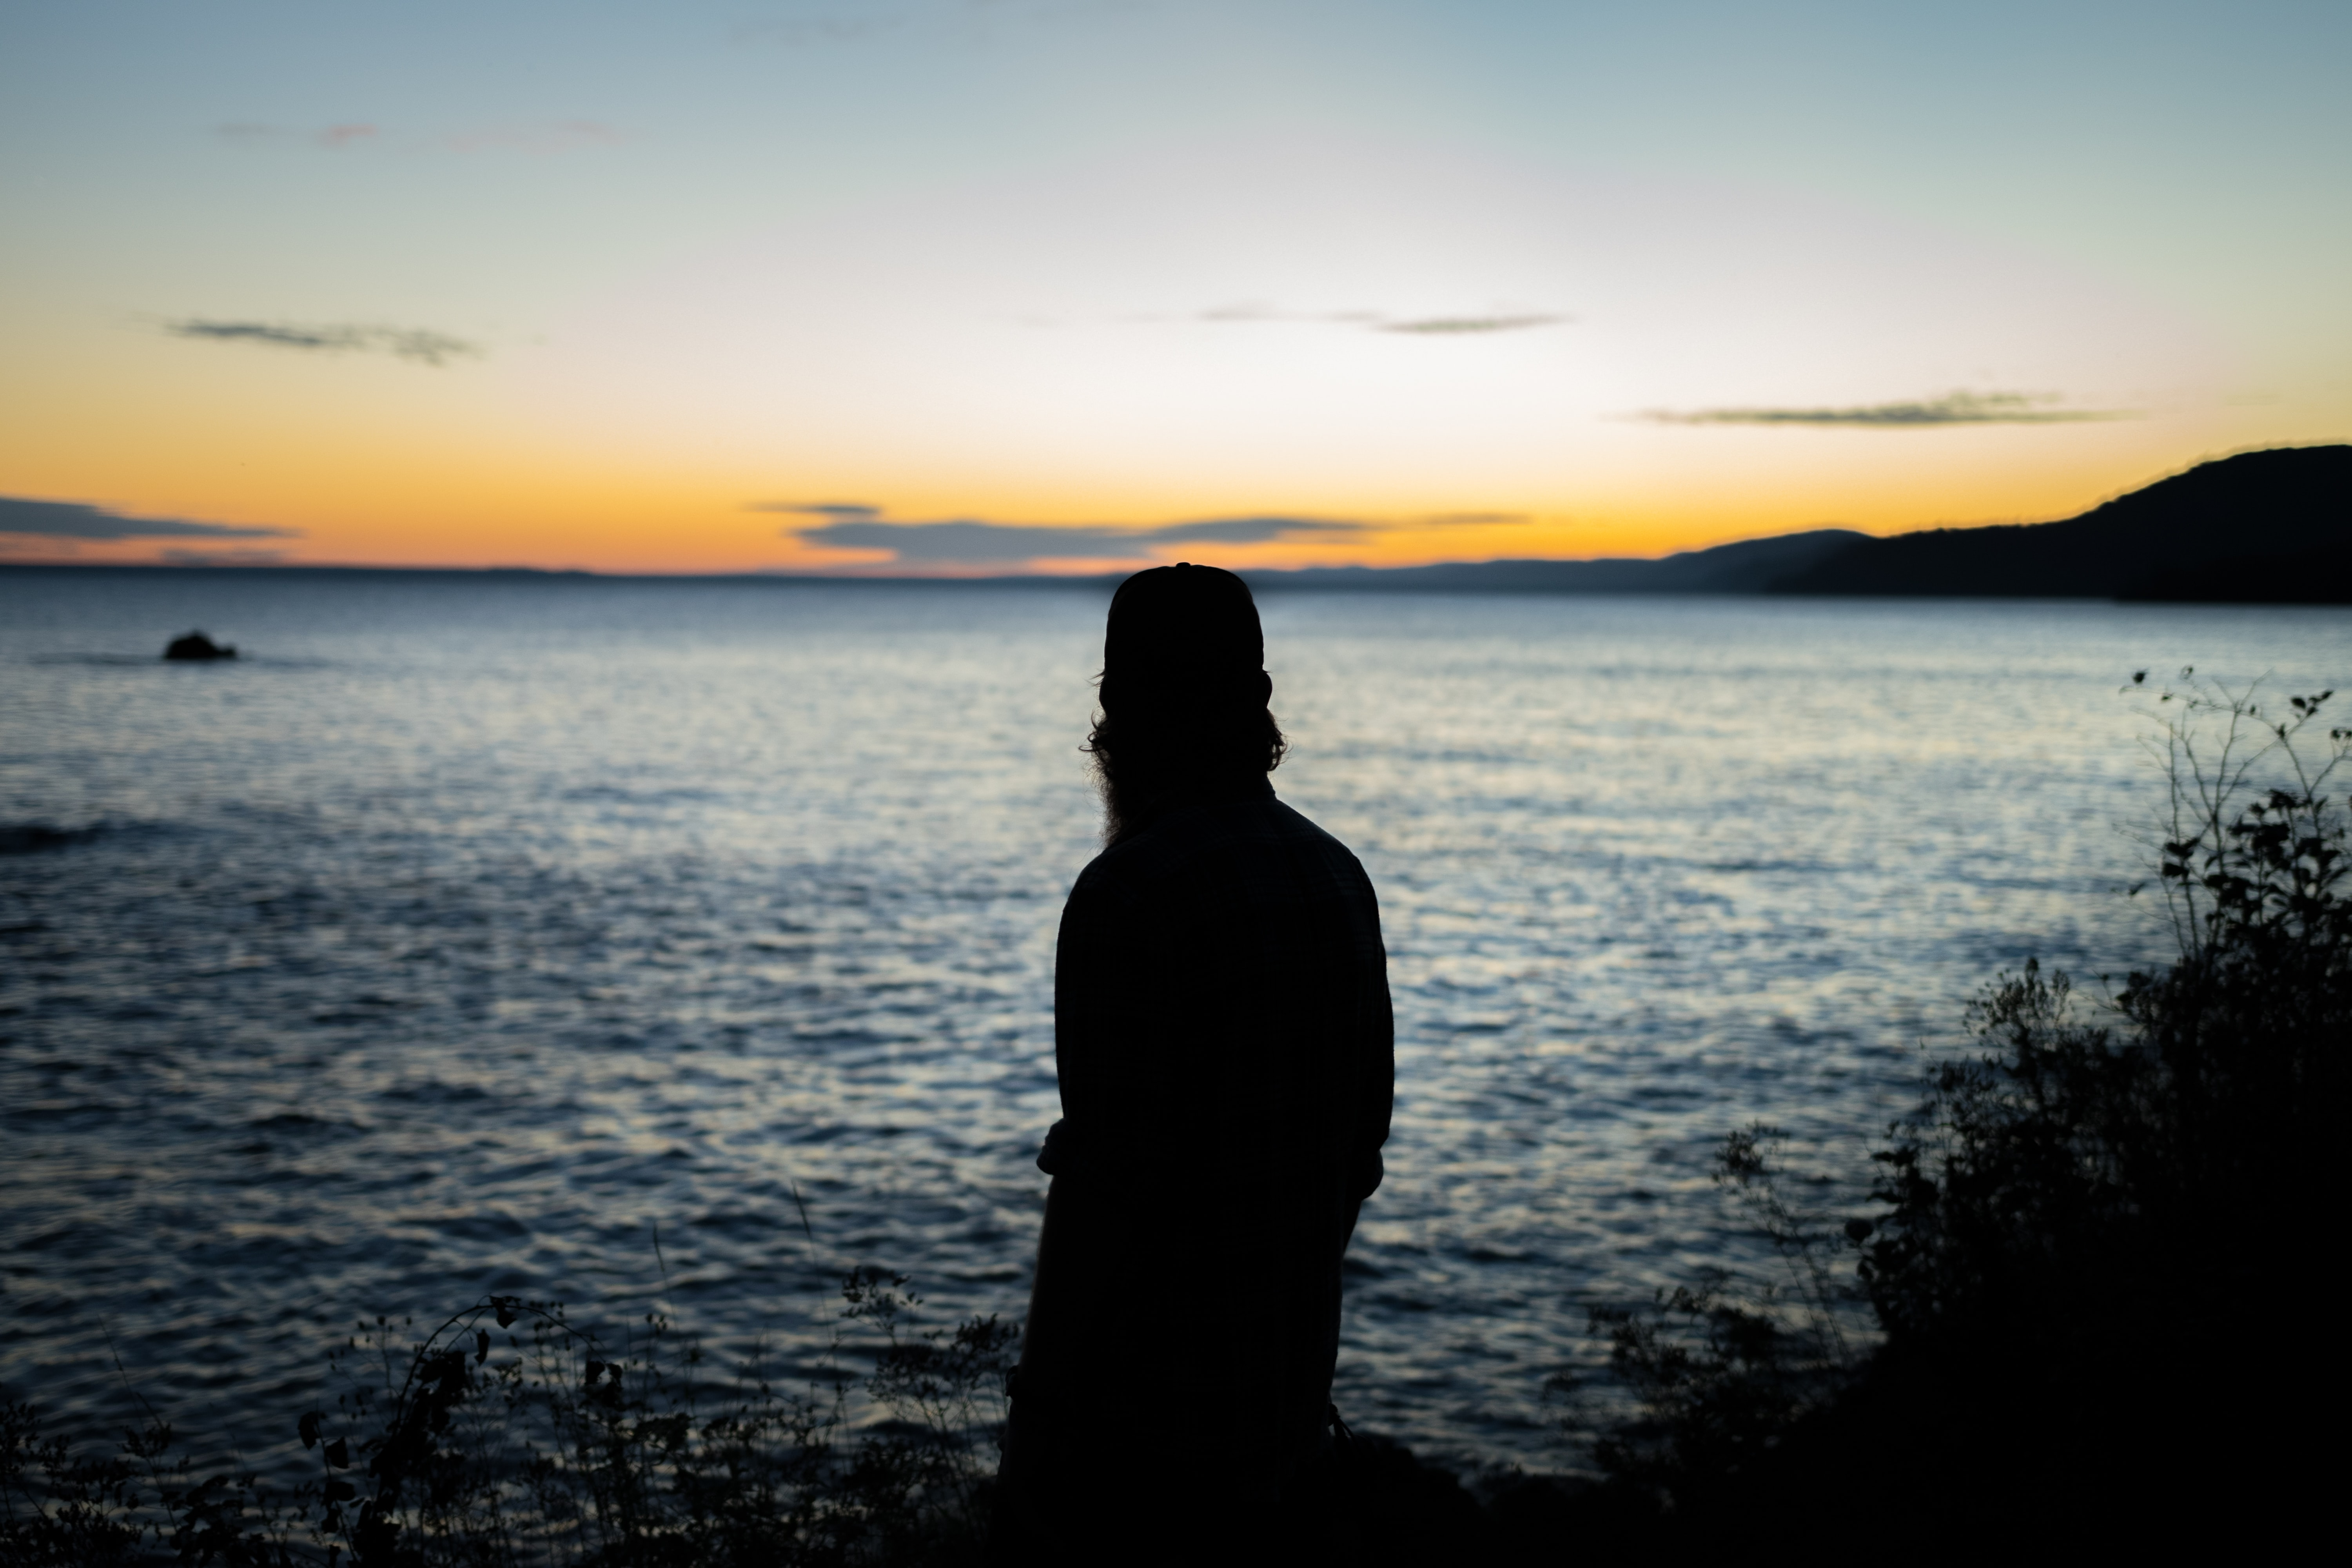 silhouette of person standing near water